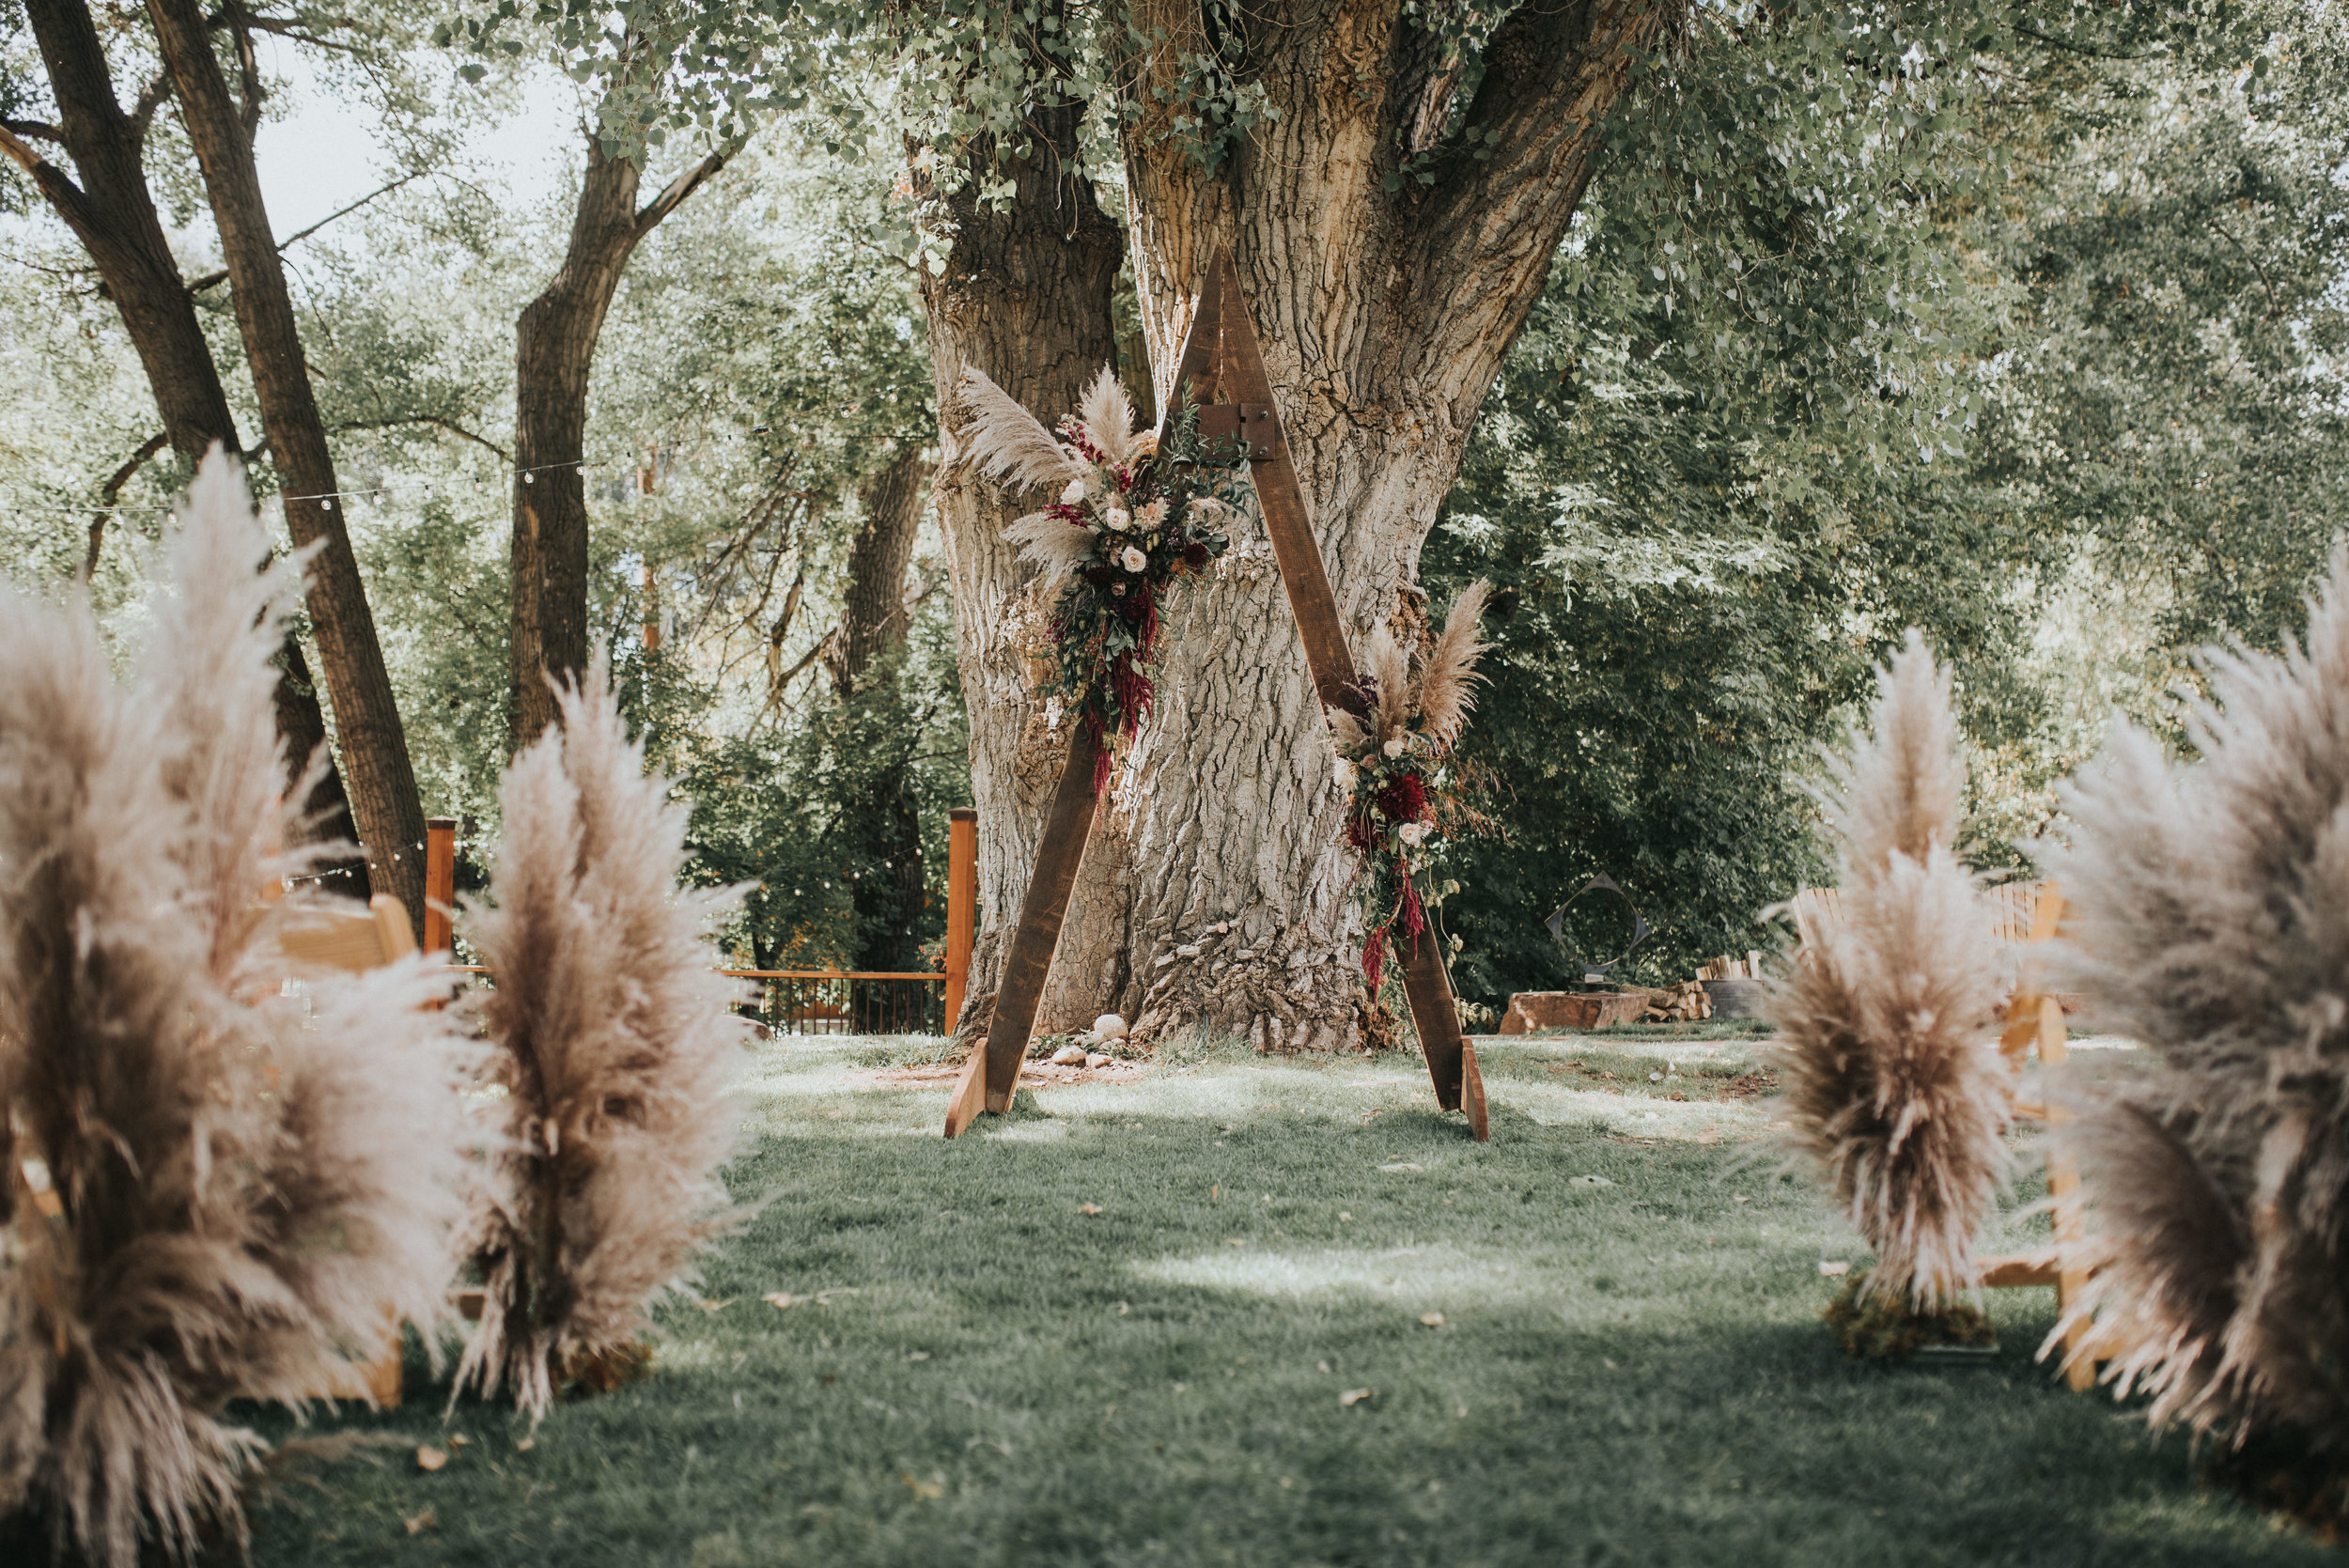 Flowers by Lace and Lilies, boutonniere, wedding flowers, jewel tones, pampas grass, hops, texture, colorado wedding, a-frame arch, arch flowers, altar flowers, ceremony flowers, moody toned wedding, pampas grass, aisle flowers